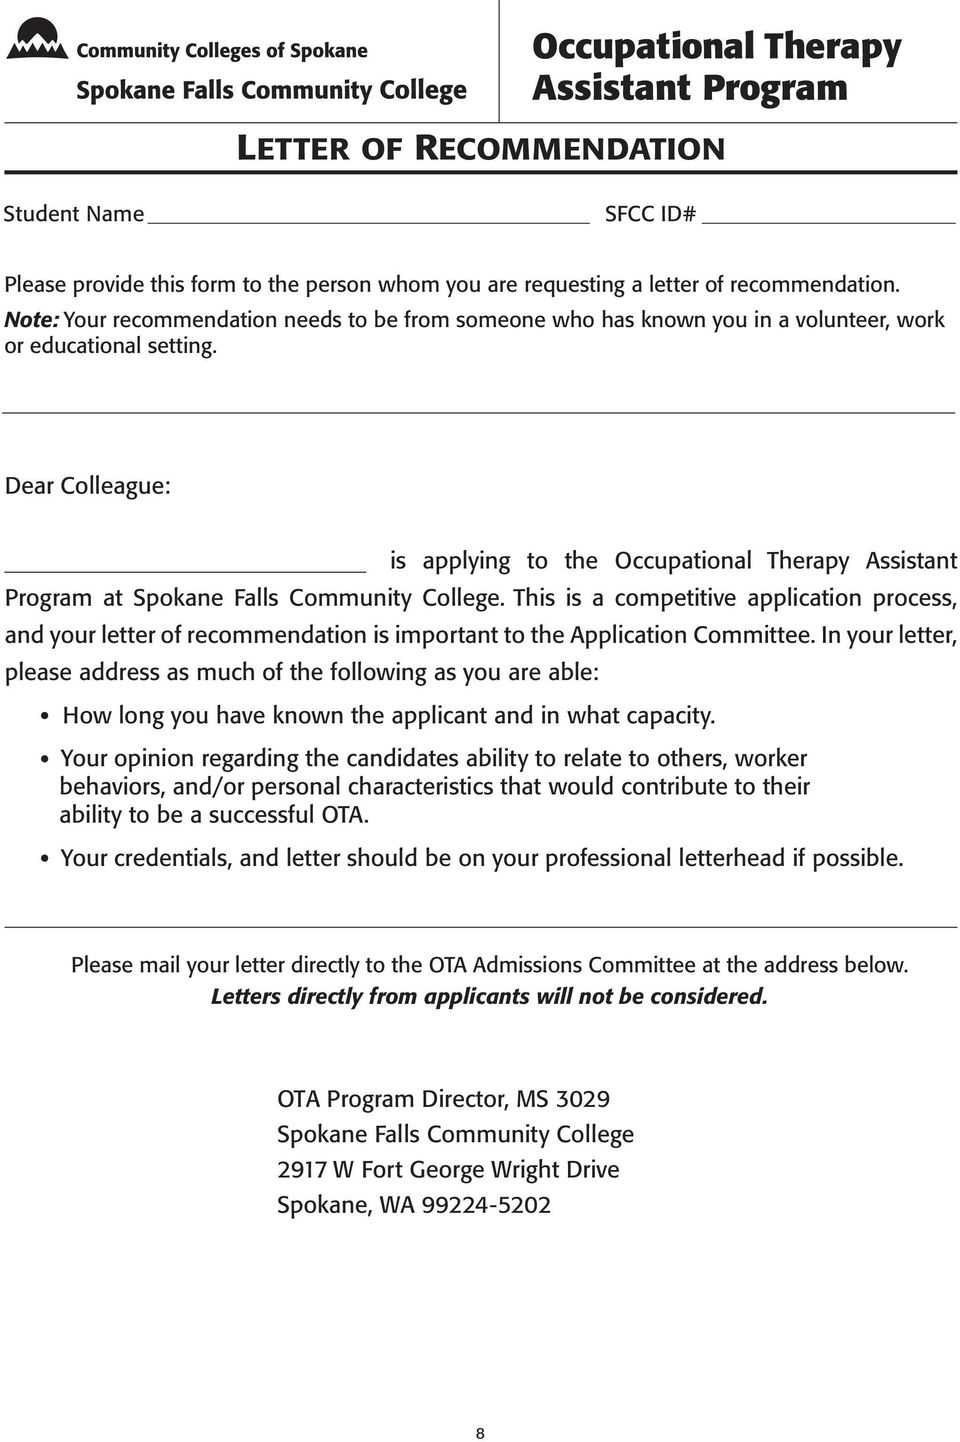 Dear Colleague: is applying to the Occupational Therapy Assistant Program at Spokane Falls Community College.